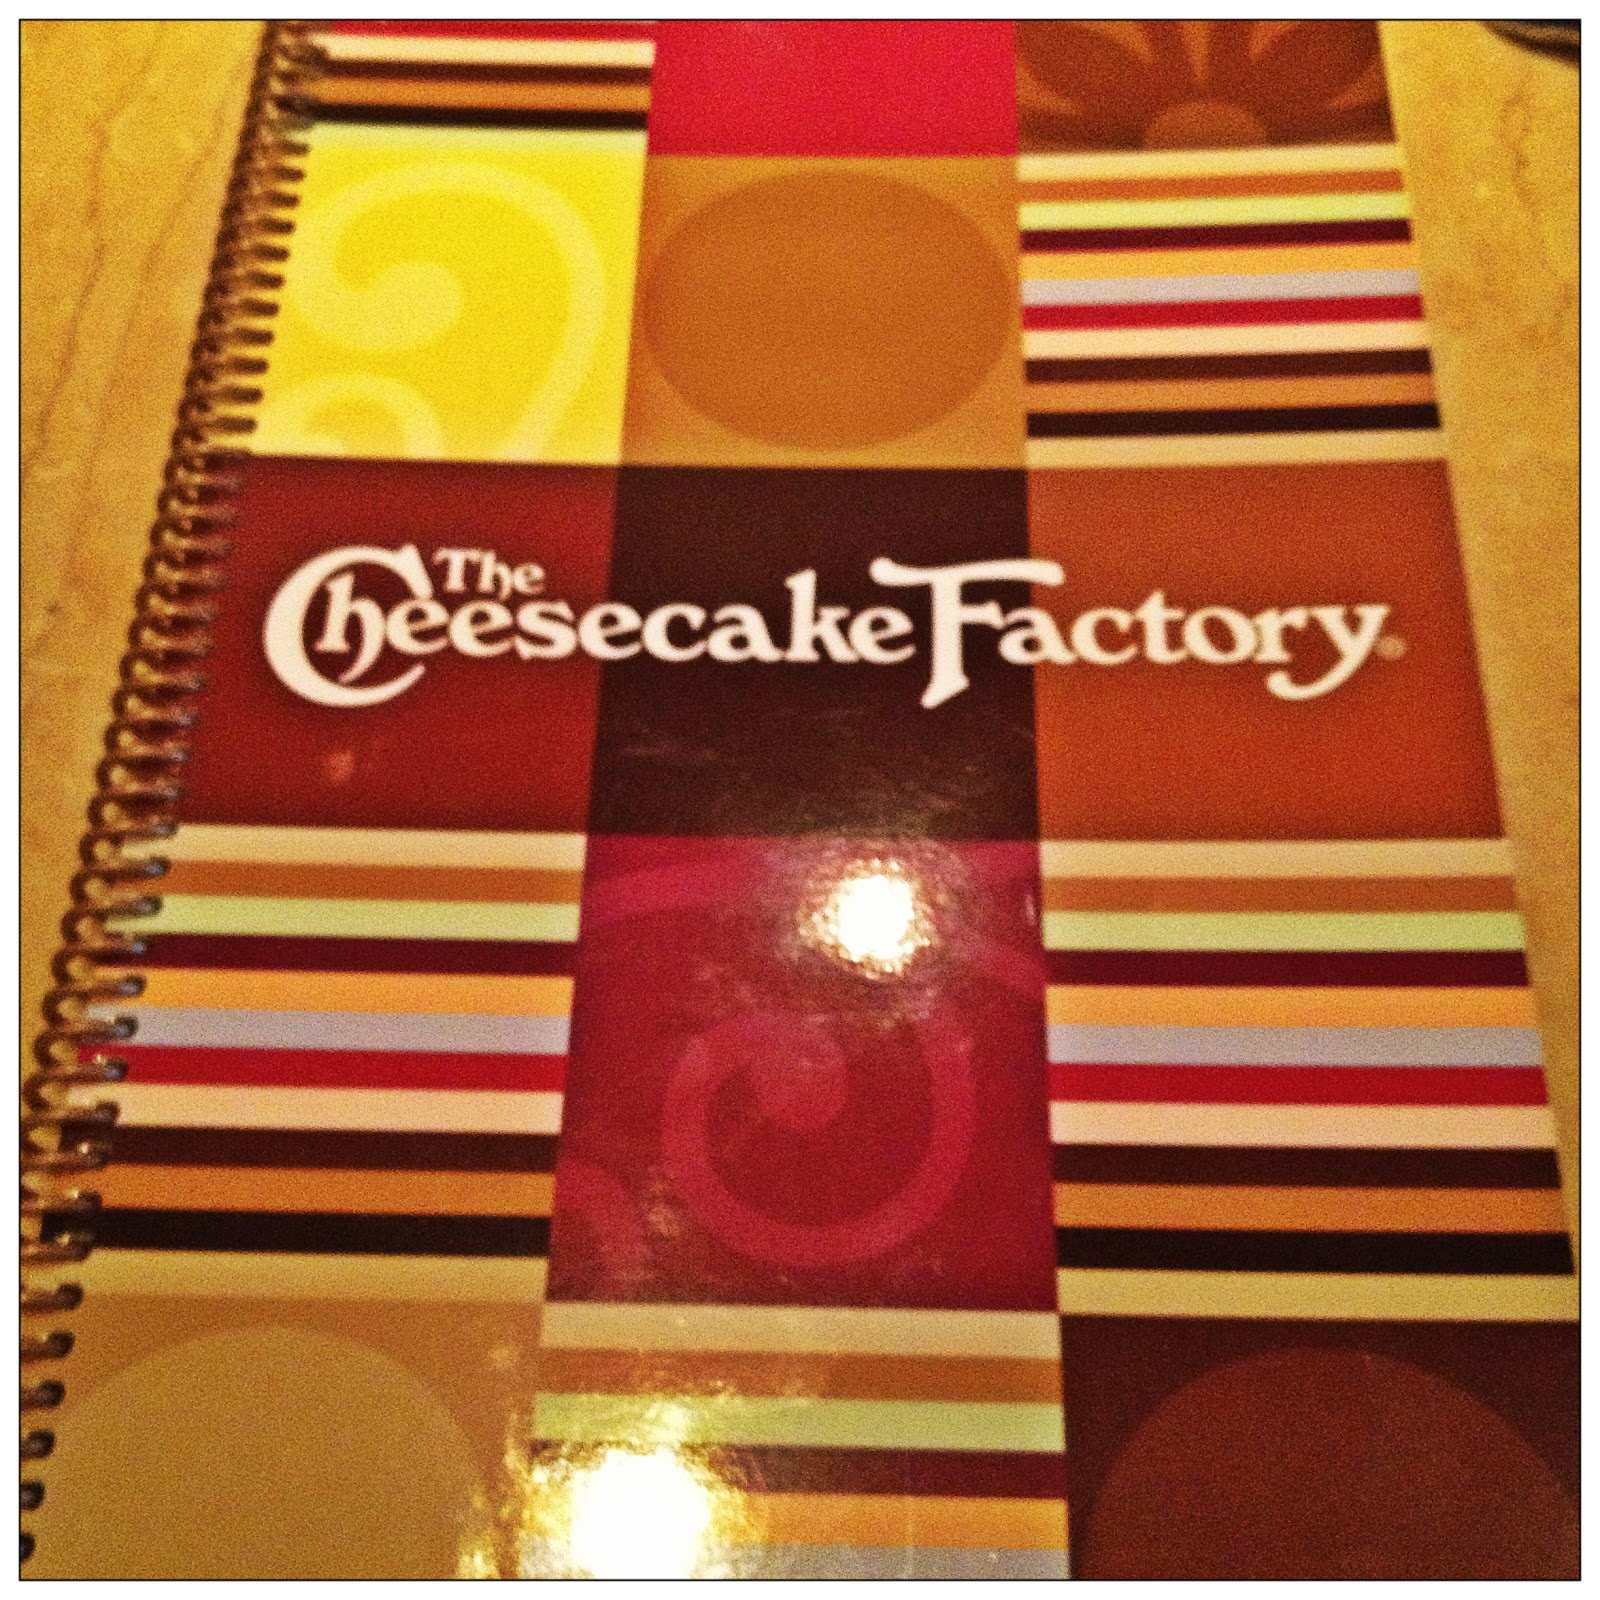 Cheesecake factory coupons nov 2018